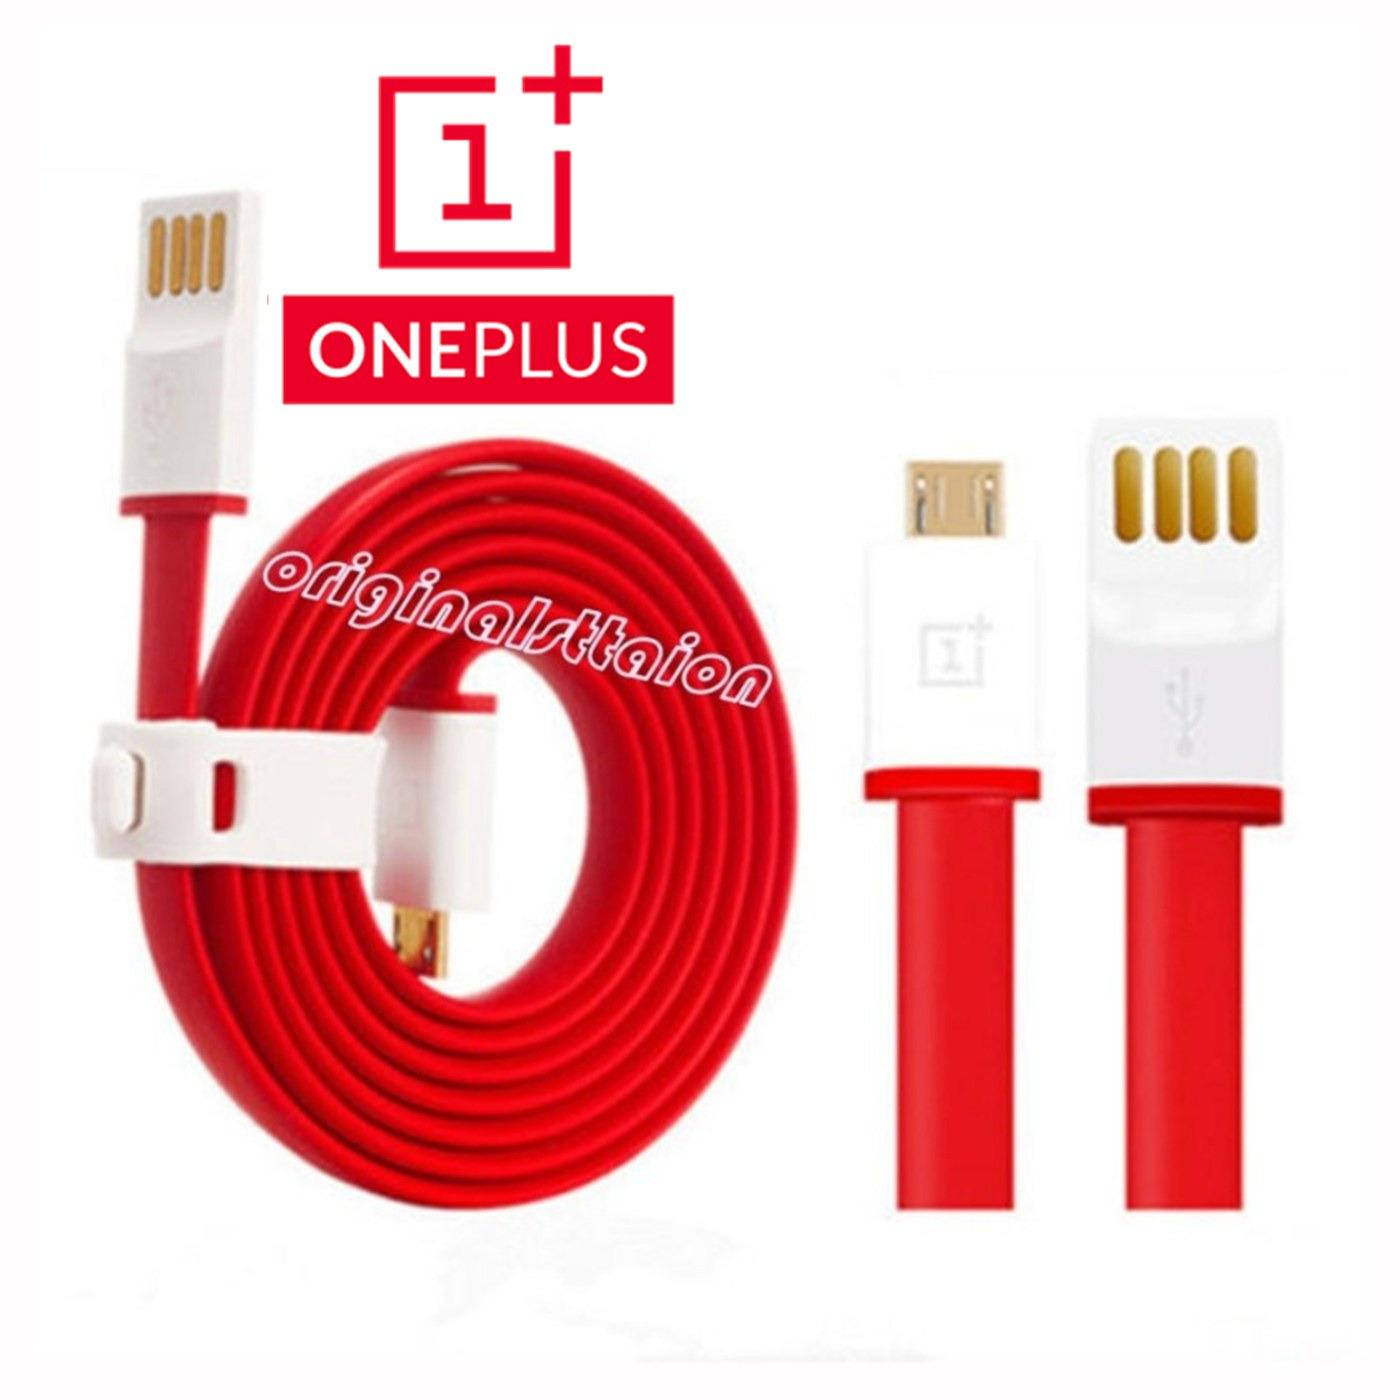 Cuci Gudang One Plus Kabel Data Micro Usb Sinkron Data Charger Universal Support Smartphones